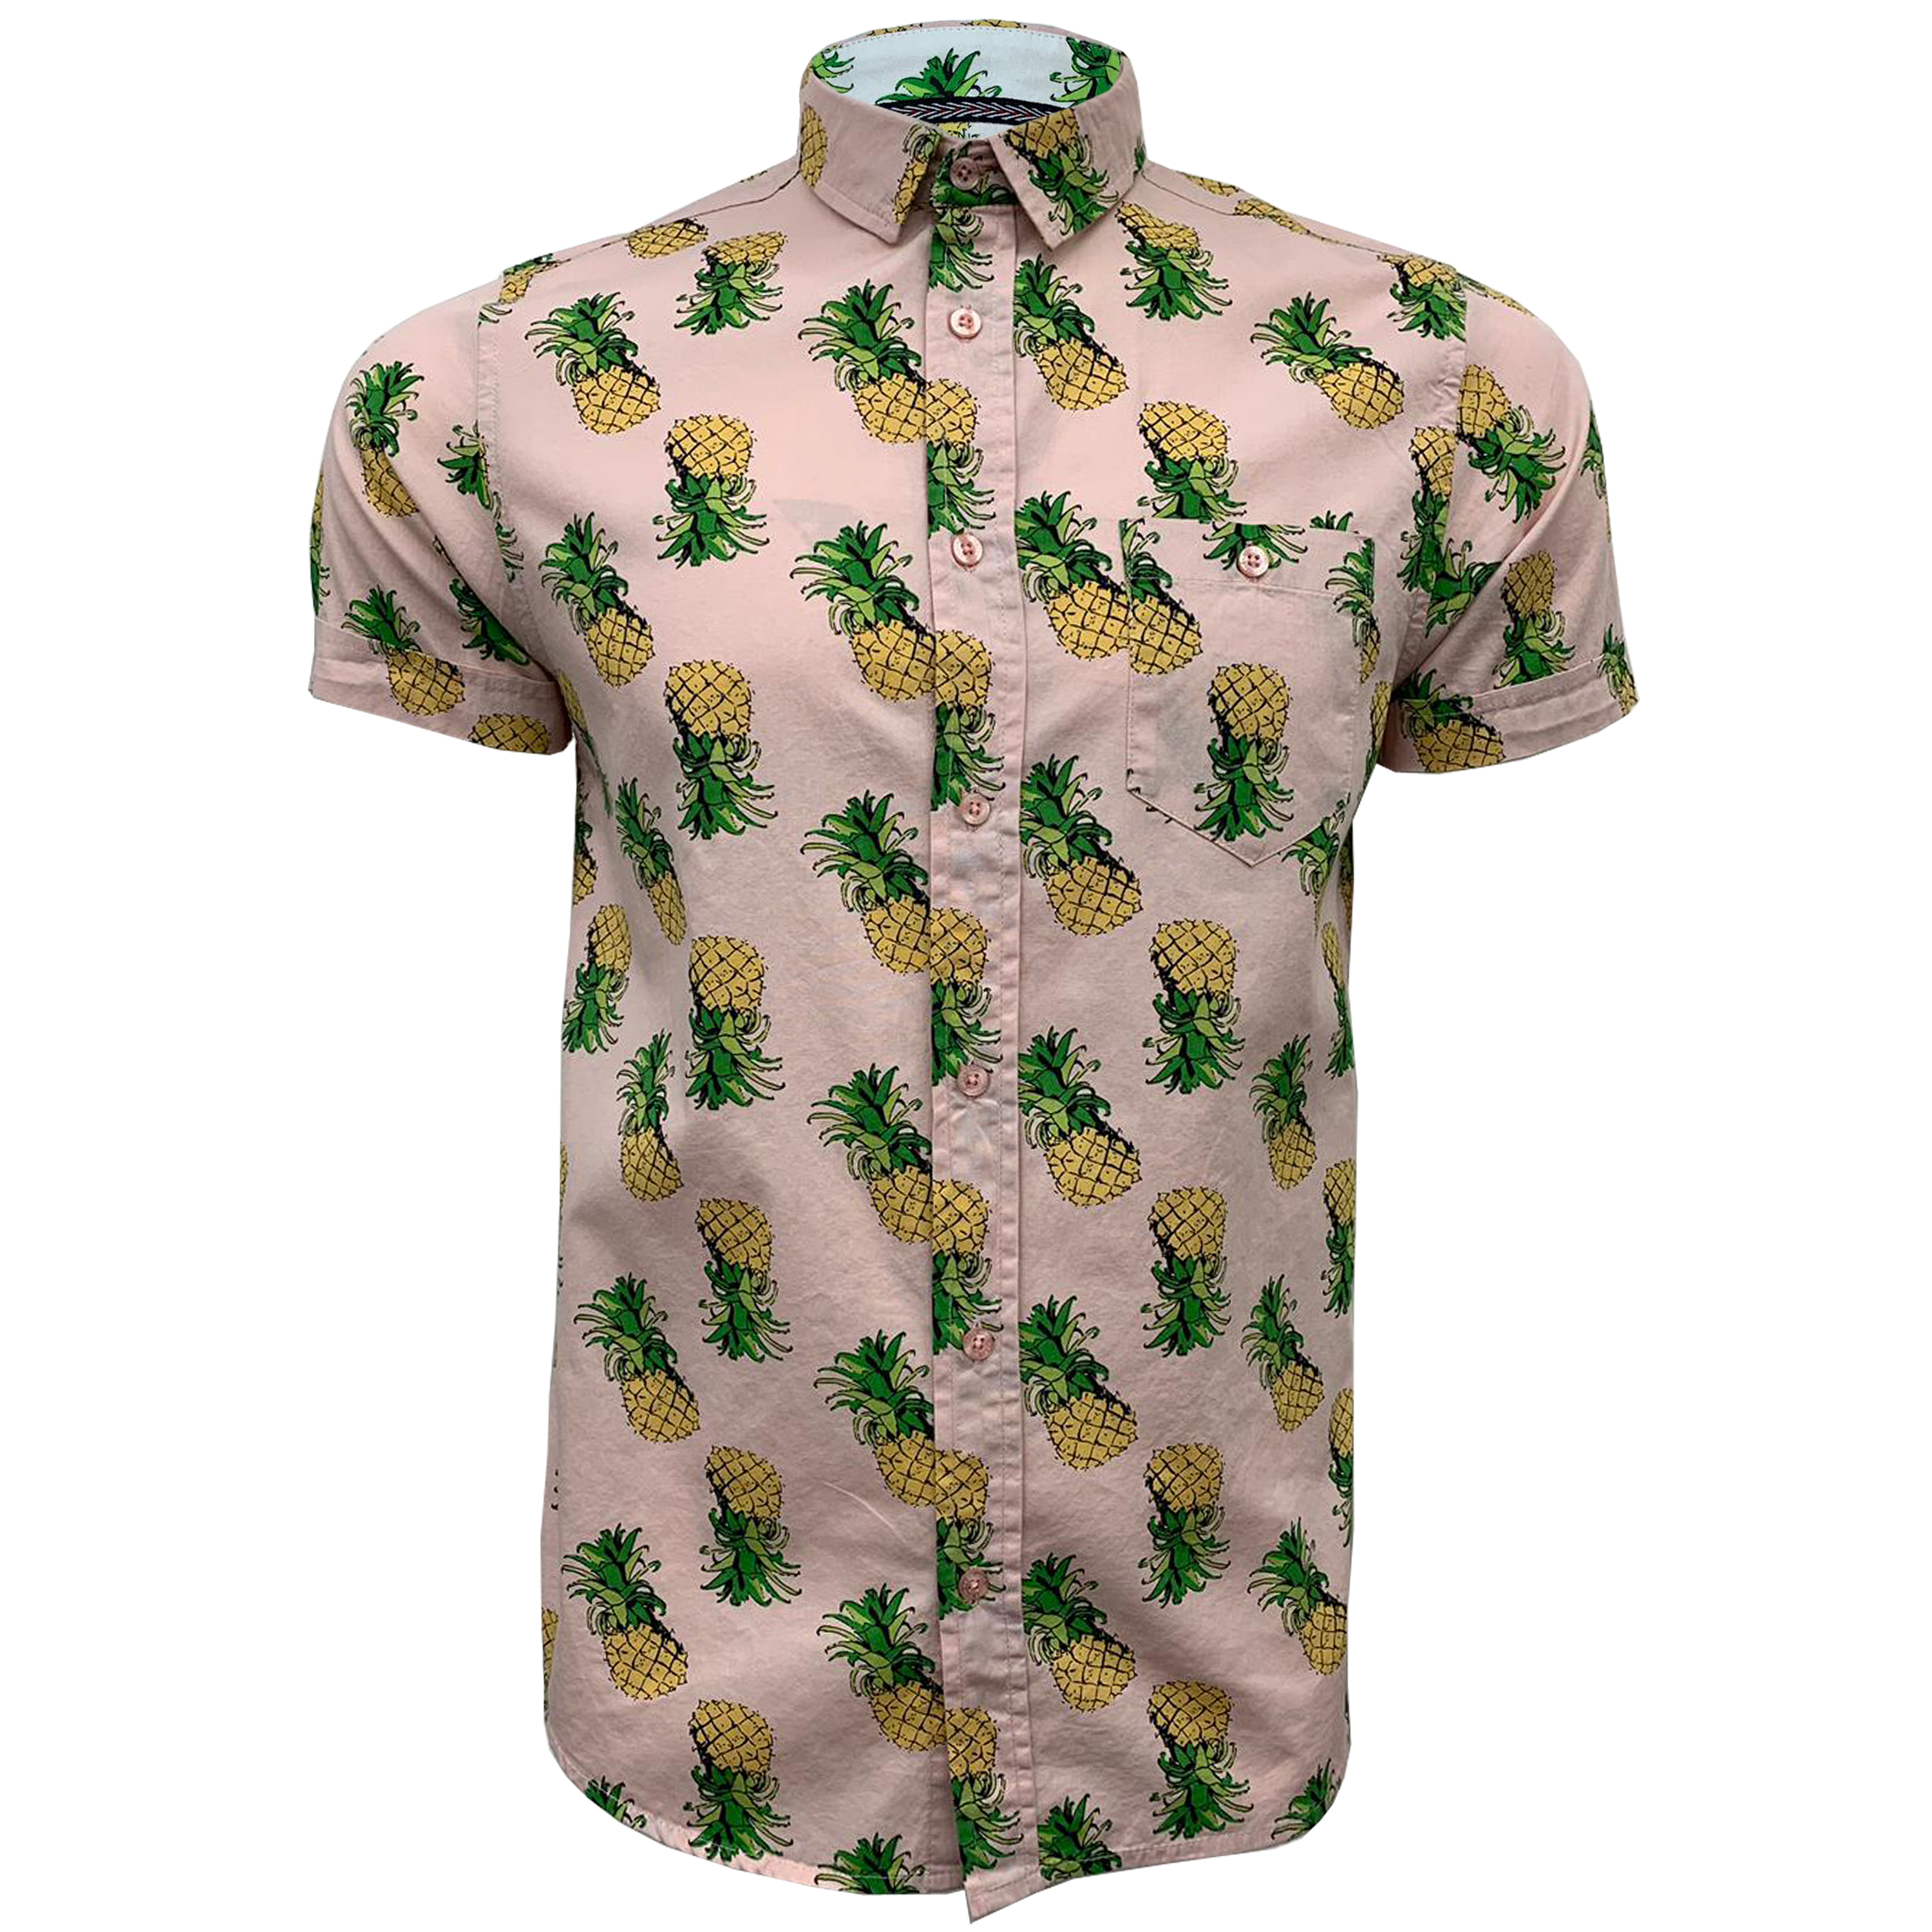 Mens-Cotton-Shirt-Brave-Soul-Pineapple-Can-Printed-Short-Sleeved-Casual-Summer thumbnail 8